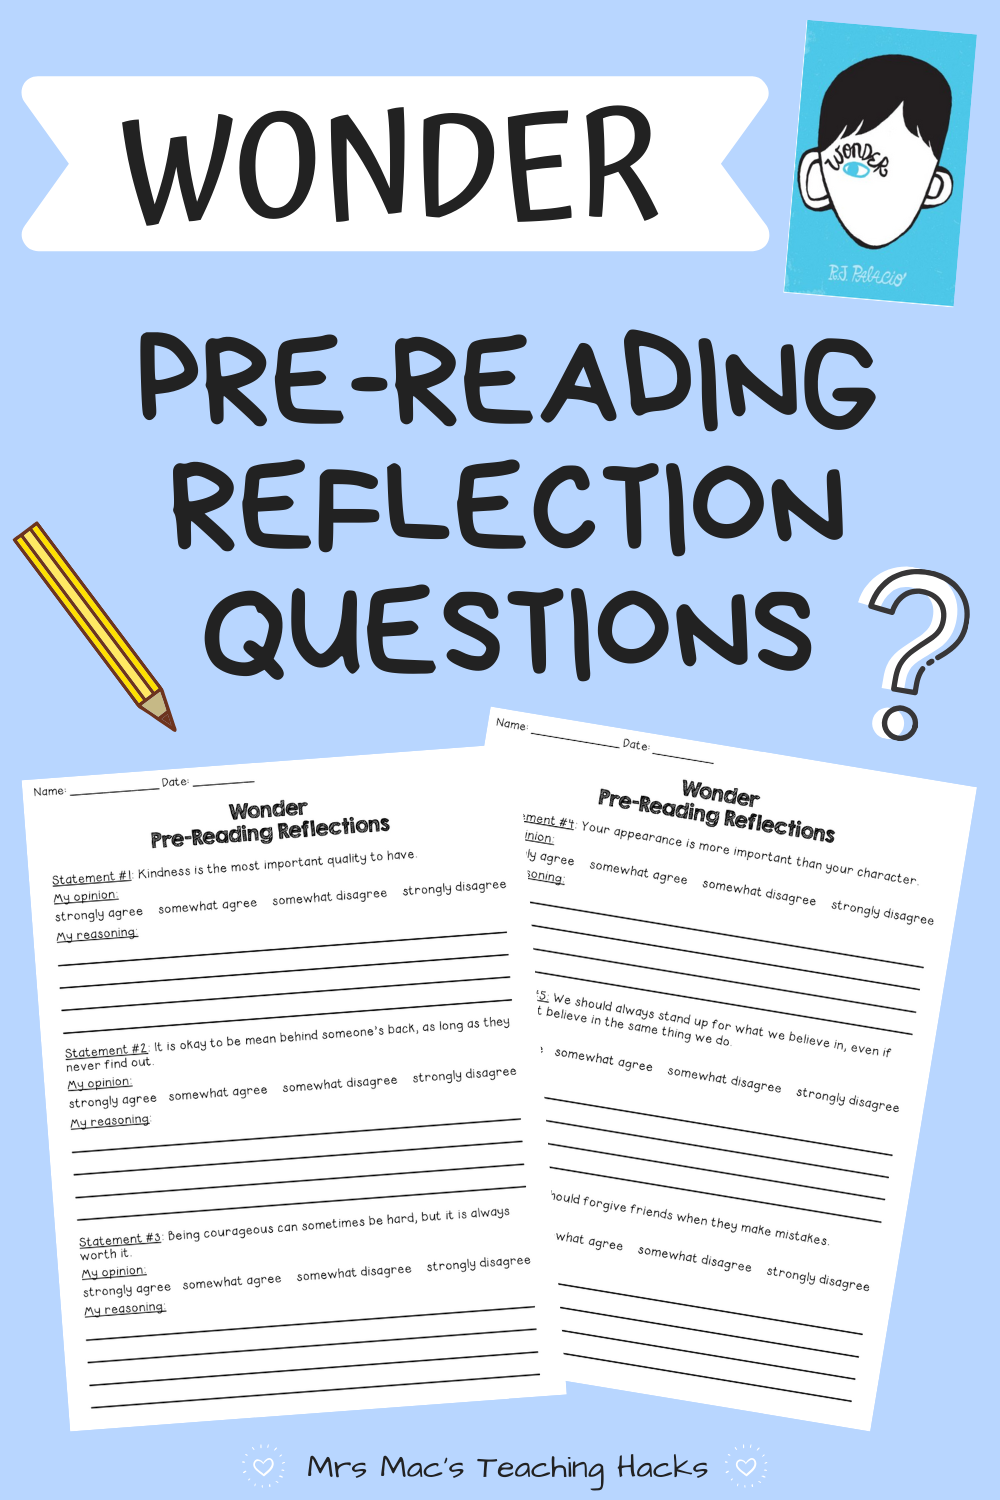 Wonder Pre Reading Reflections Reflection Questions This Or That Questions Reading [ 1500 x 1000 Pixel ]